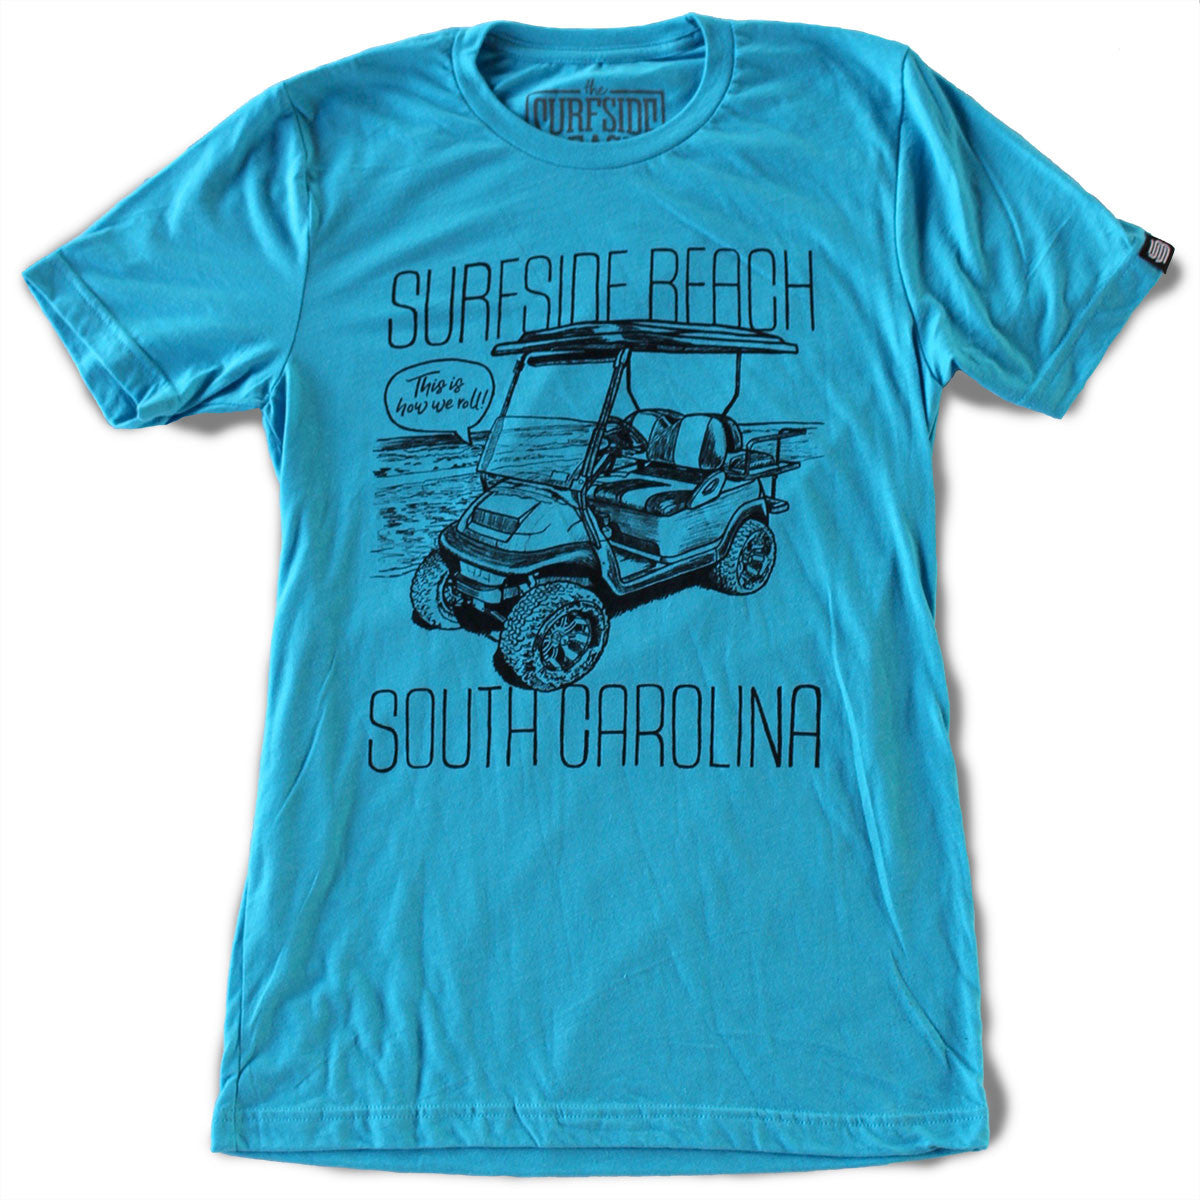 Surfside Beach, South Carolina (This is how we roll!) premium T-shirt